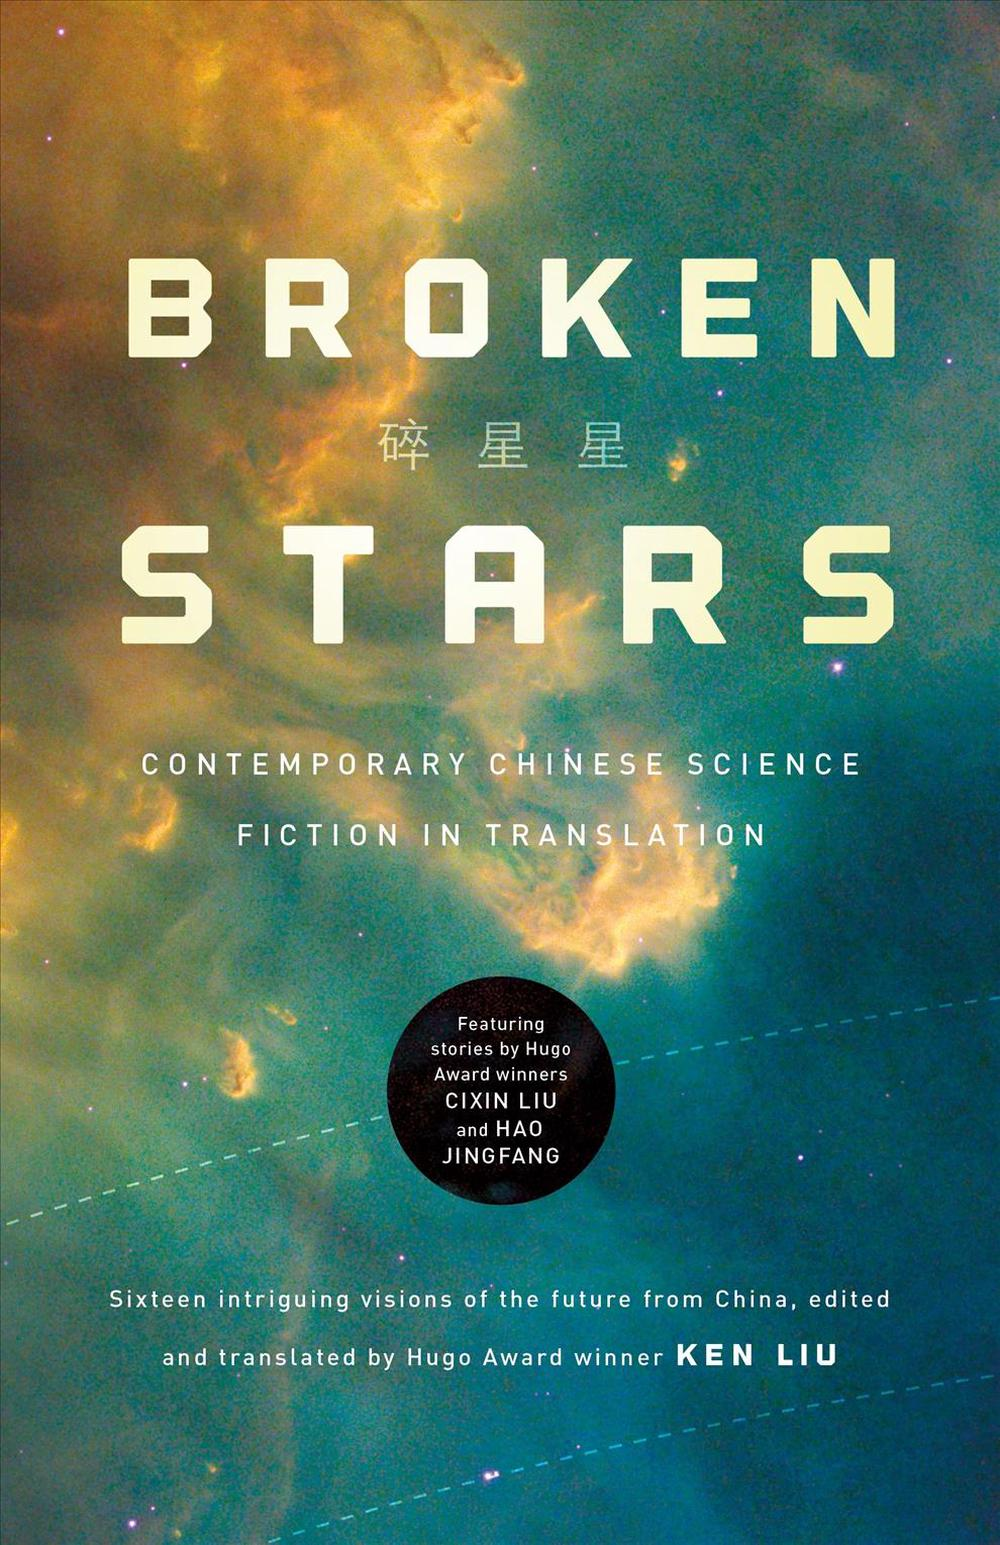 Broken Stars: Contemporary Chinese Science Fiction in Translation